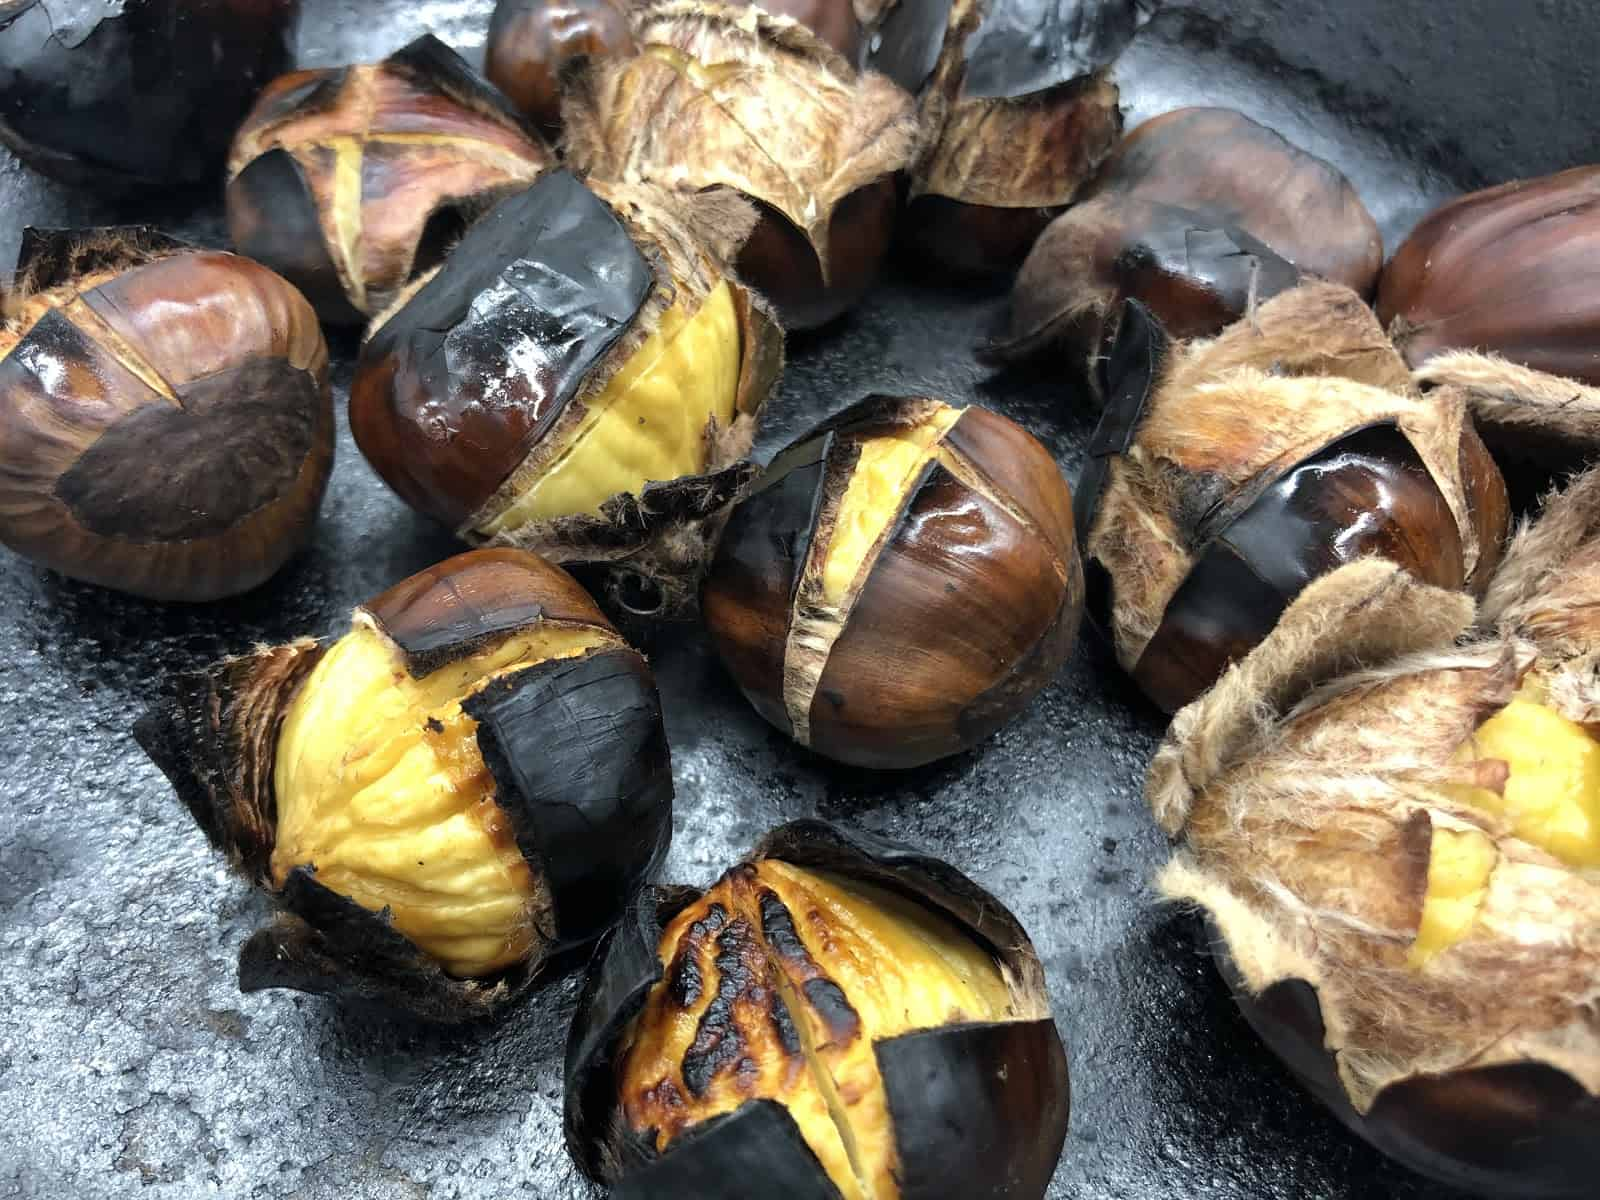 Chestnuts Roasting on an Open Fire - They're done and smell absolutely delicious (Photo by Erich Boenzli)